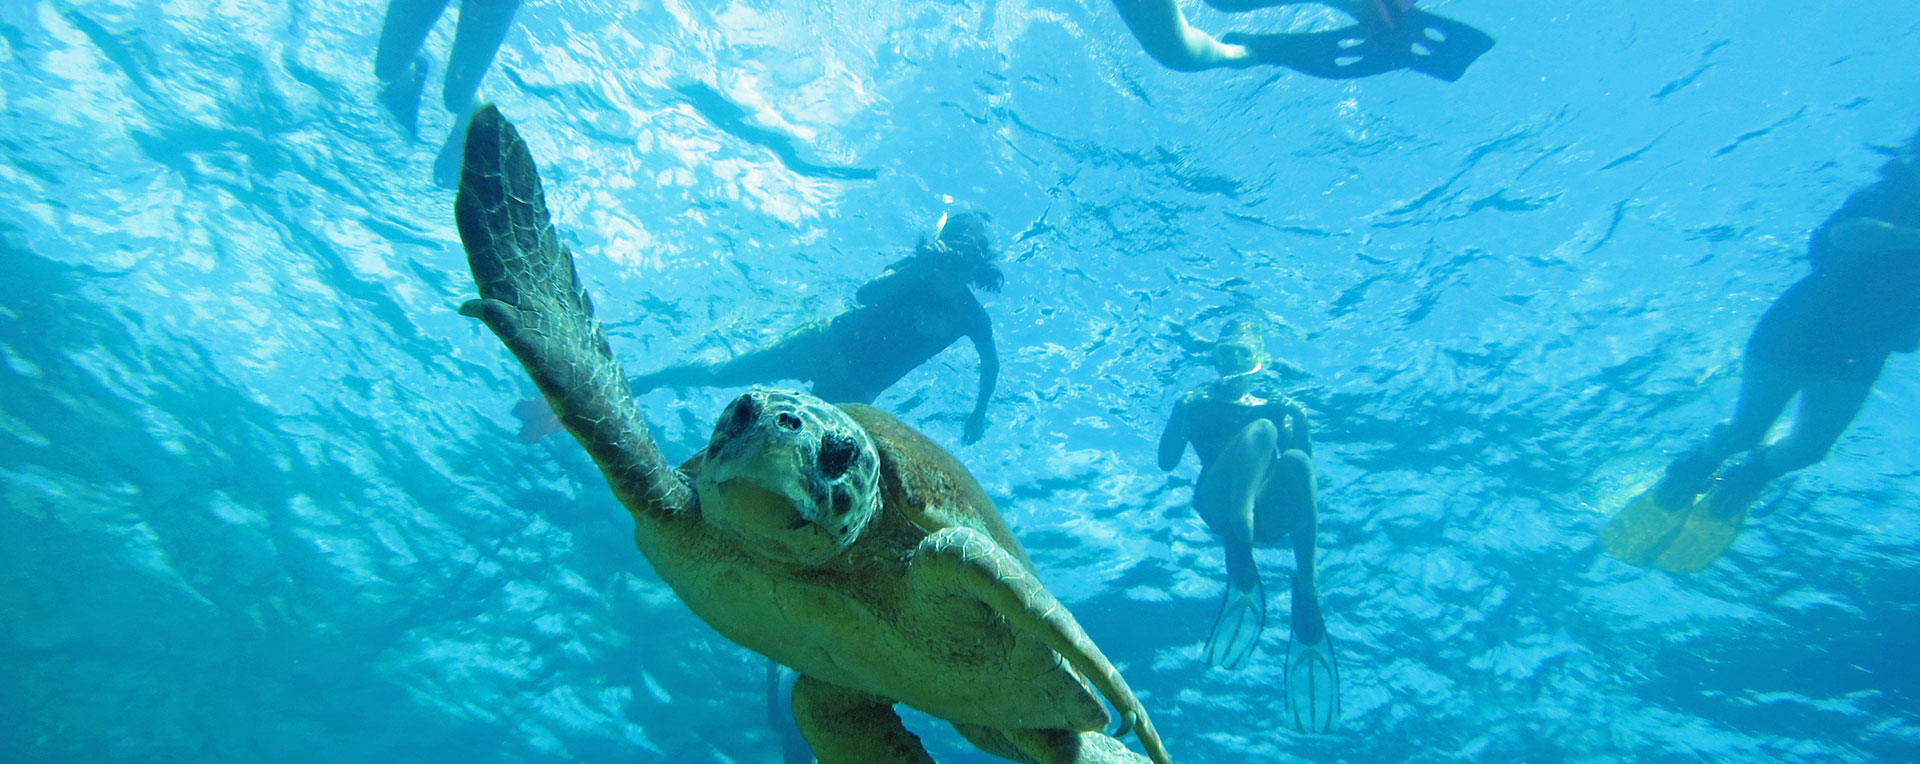 Turkey- Turtles & Marine Biology